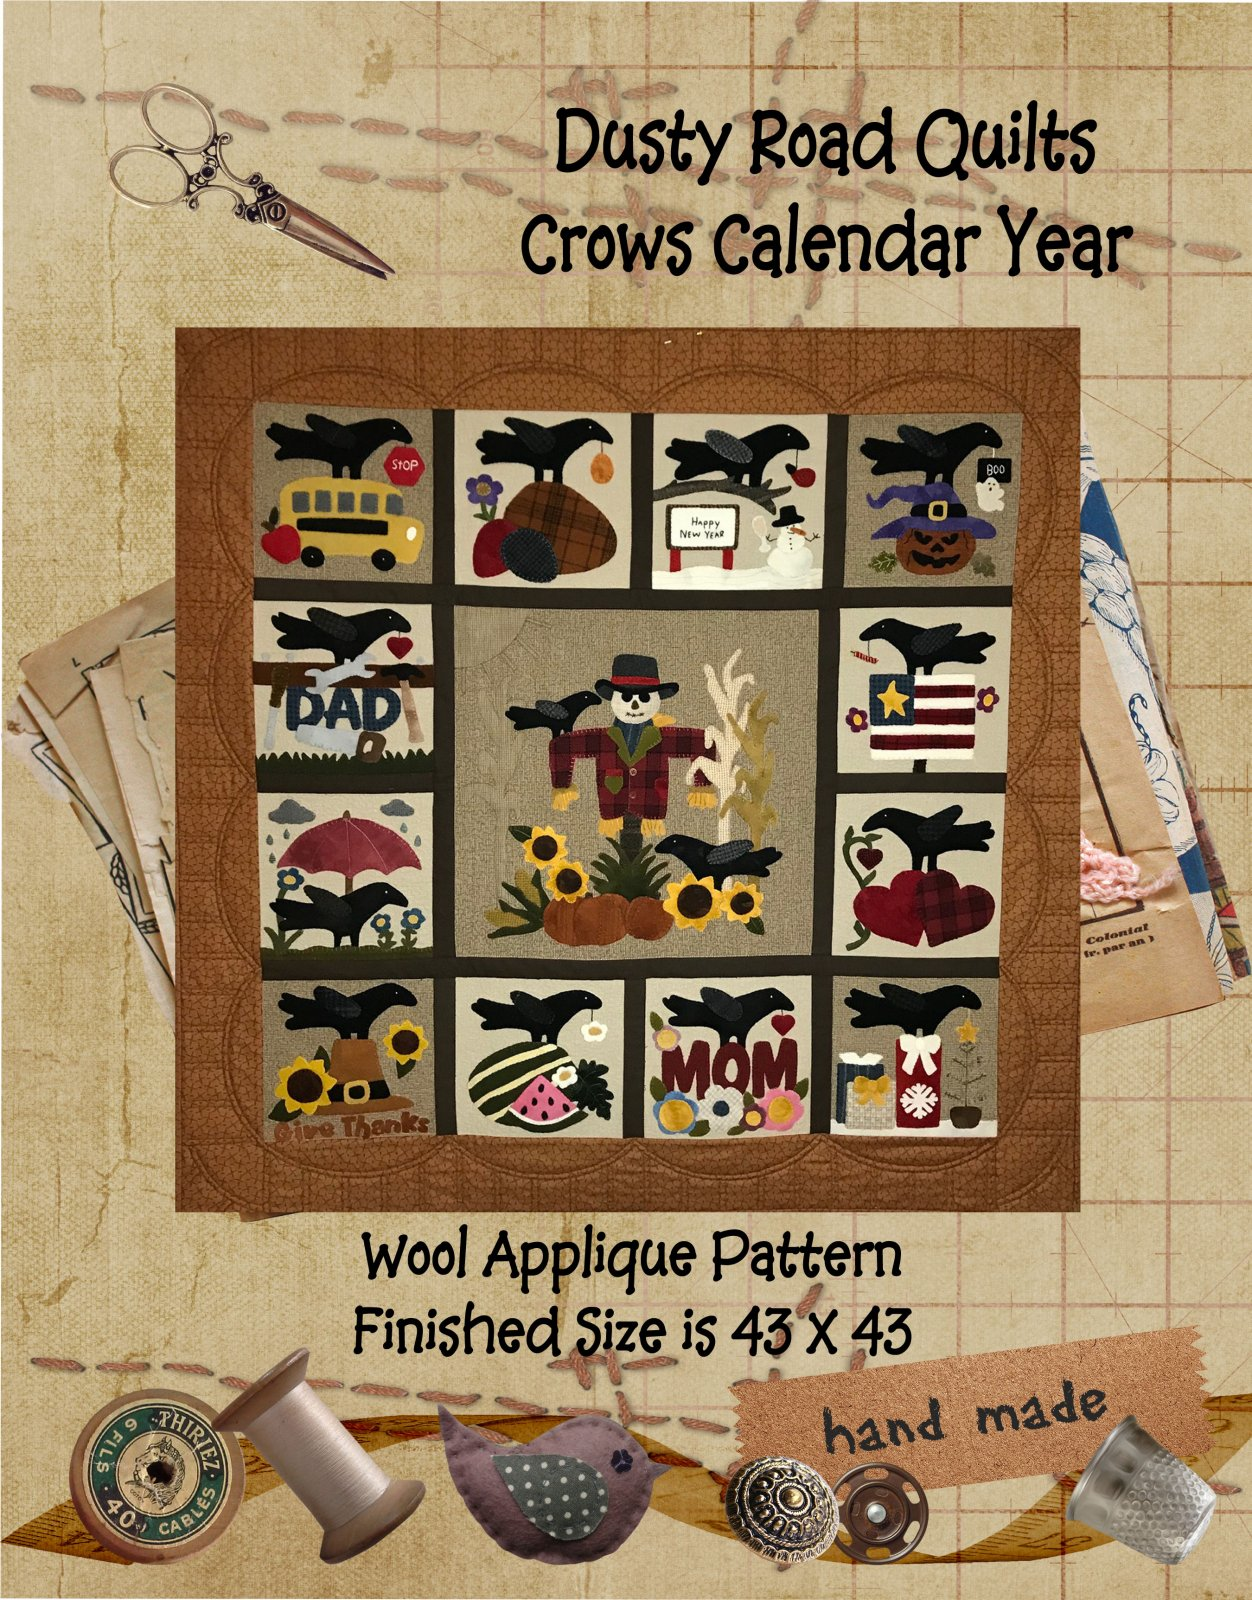 Crows Calendar Year Pattern Only